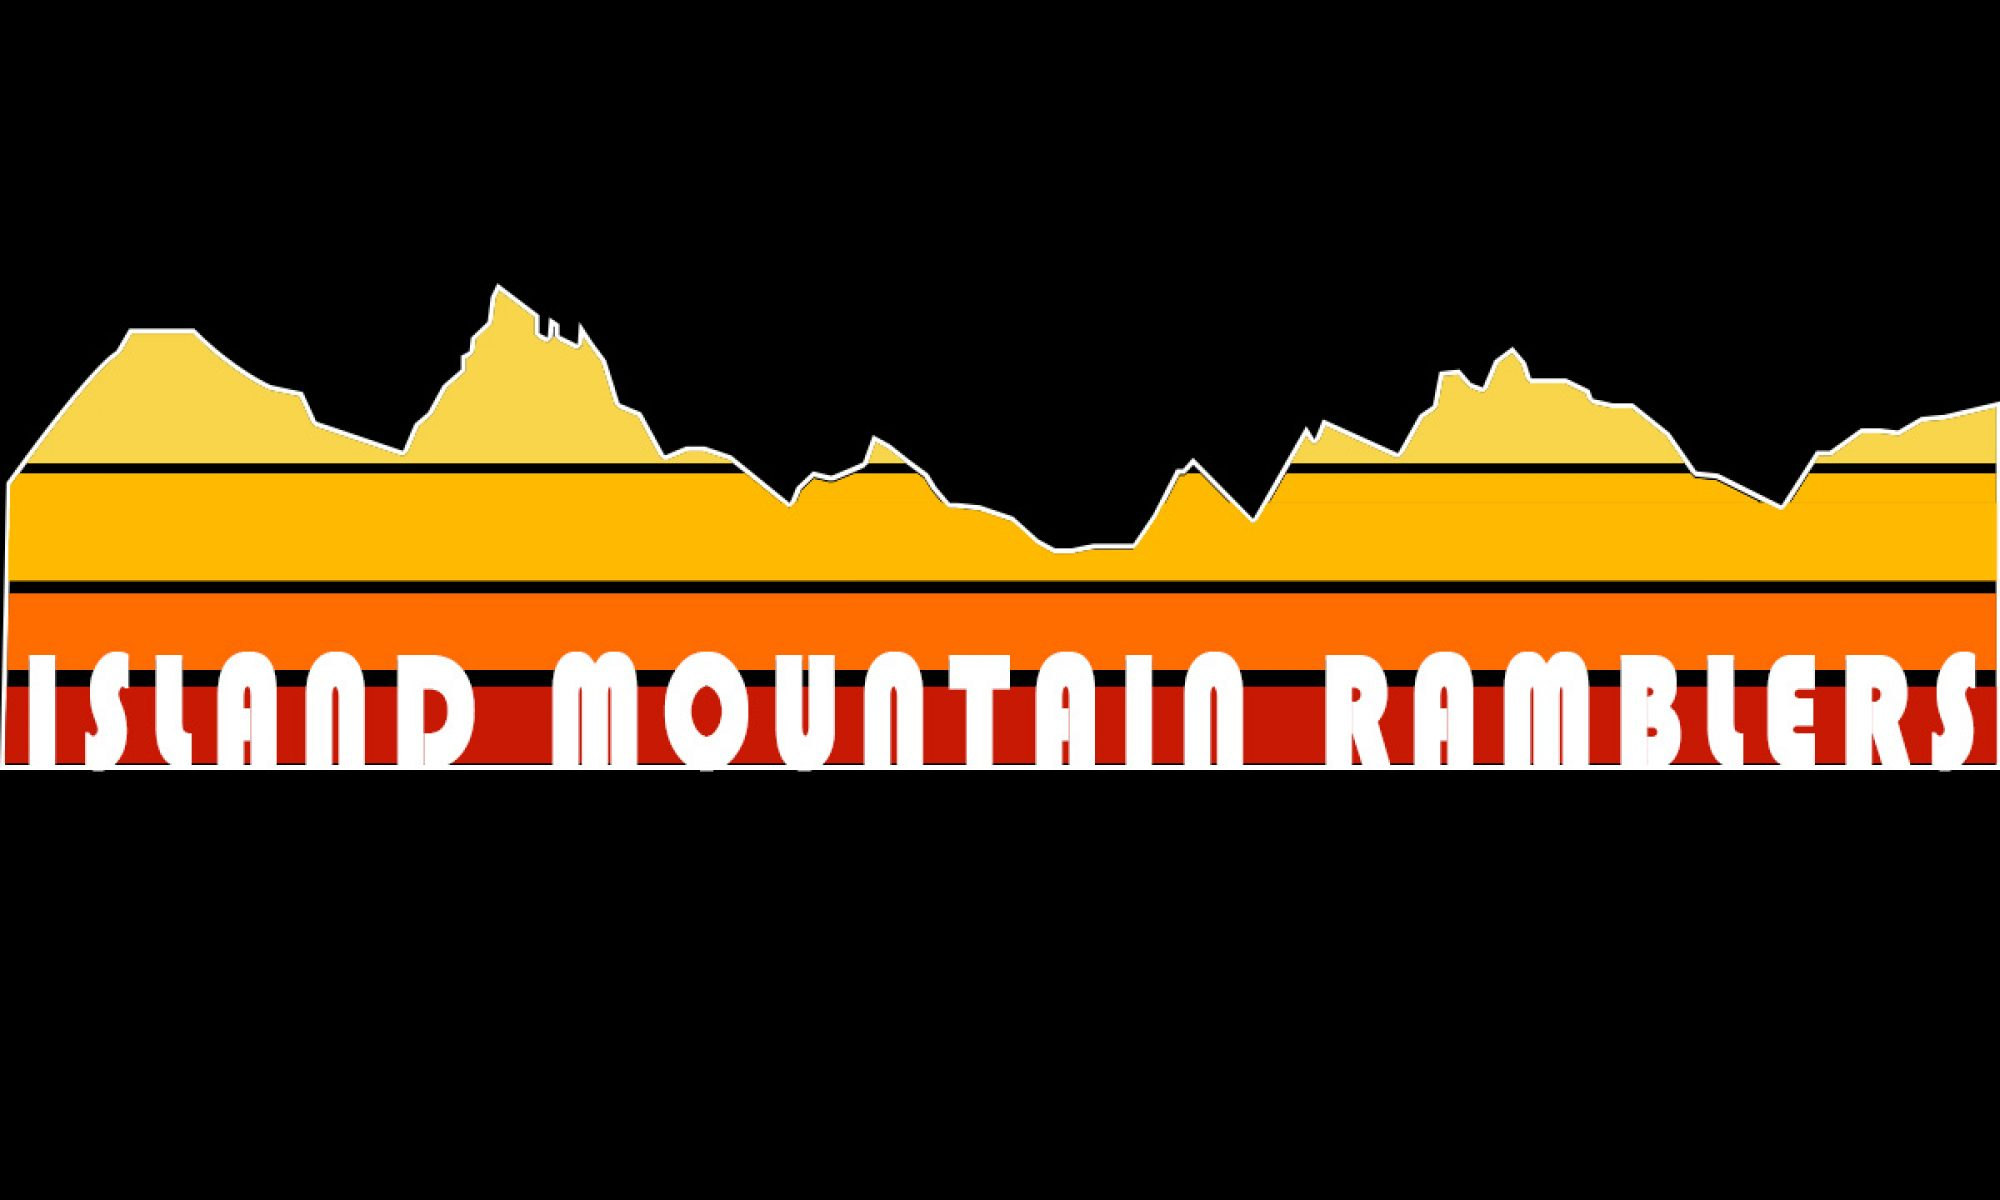 Island Mountain Ramblers